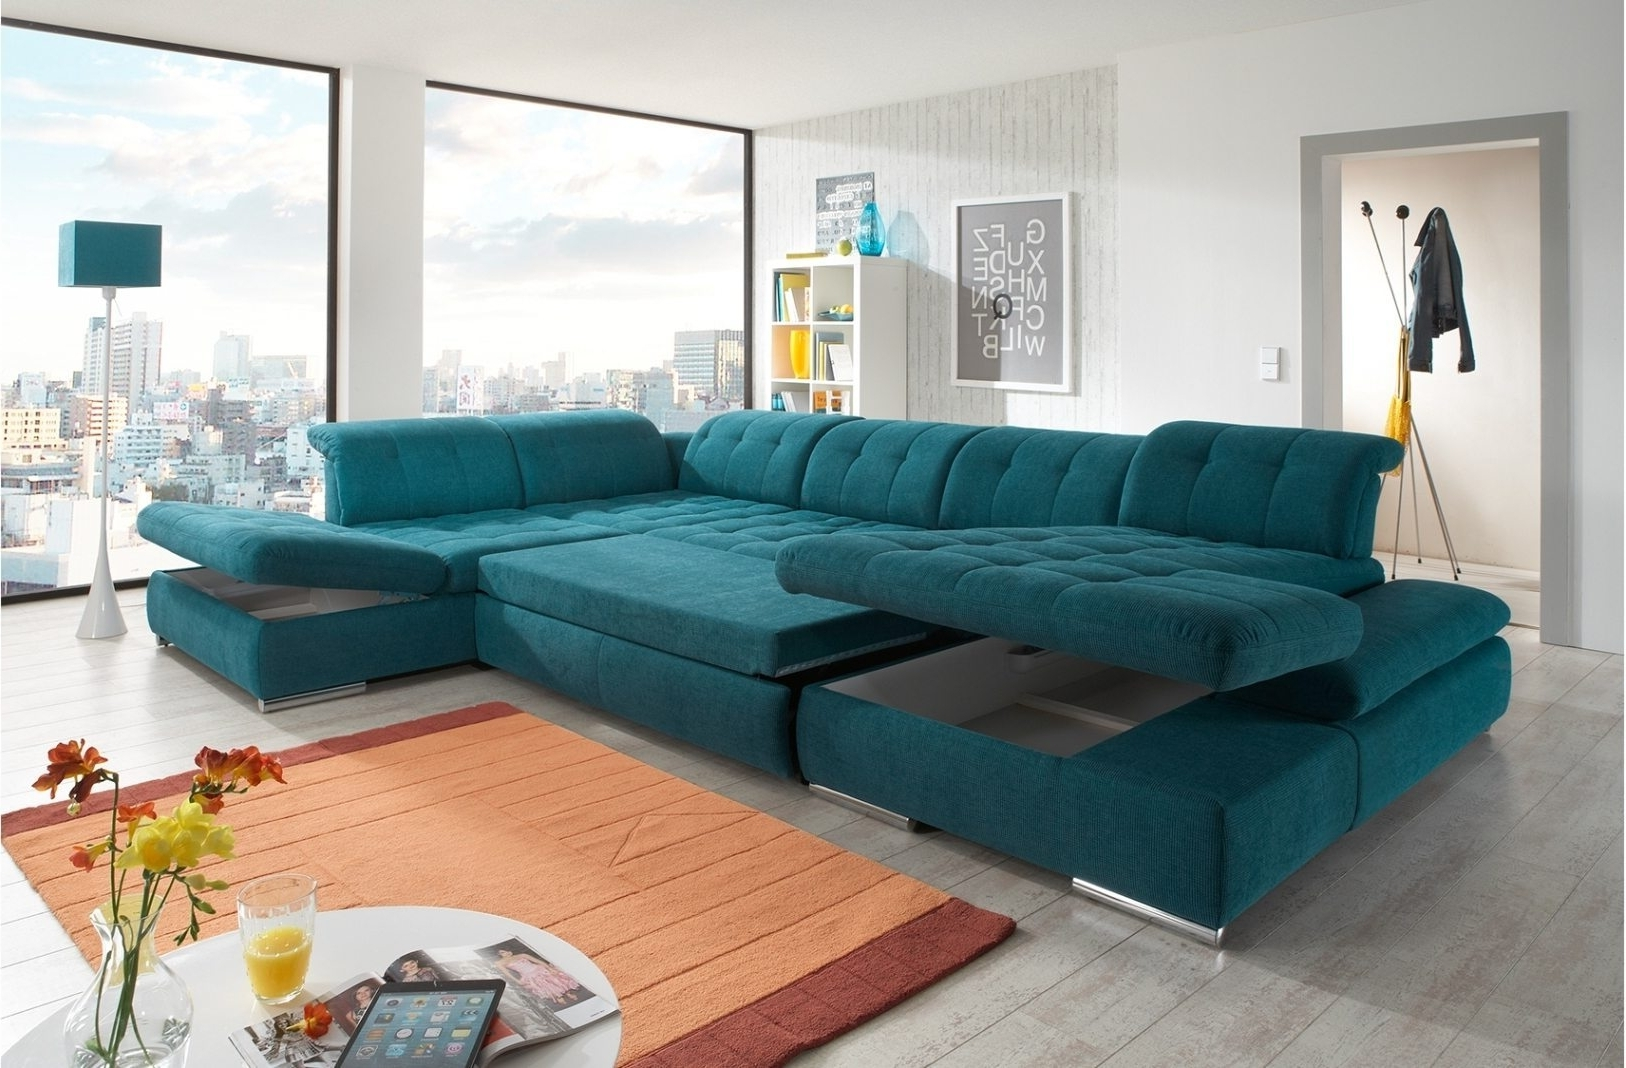 Appealing Deep Seated Sectional Sofa As Cover For With Chaise At Inside Most Popular Deep Seating Sectional Sofas (View 11 of 20)